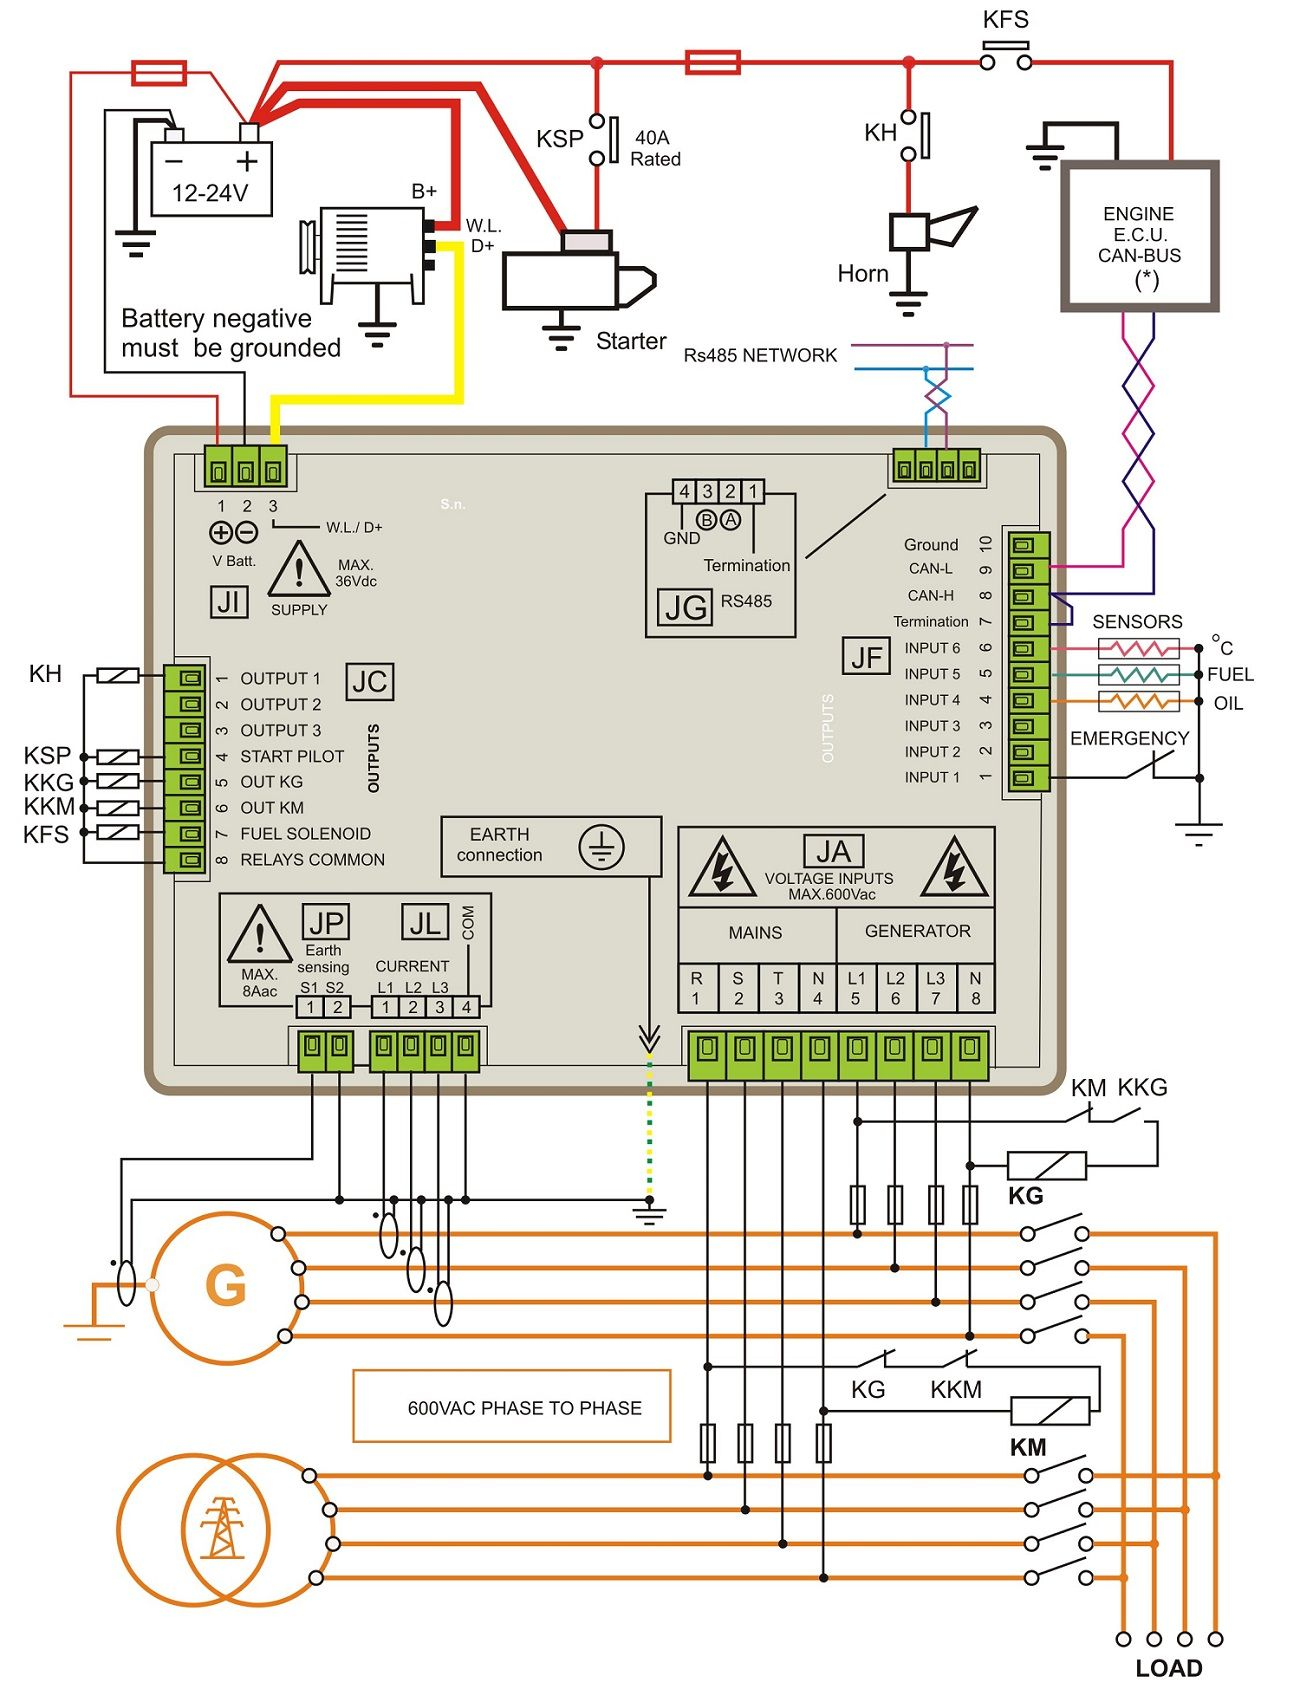 rh2b u relay wiring diagram electrical wiring diagram rh2b u relay wiring diagram [ 1300 x 1702 Pixel ]